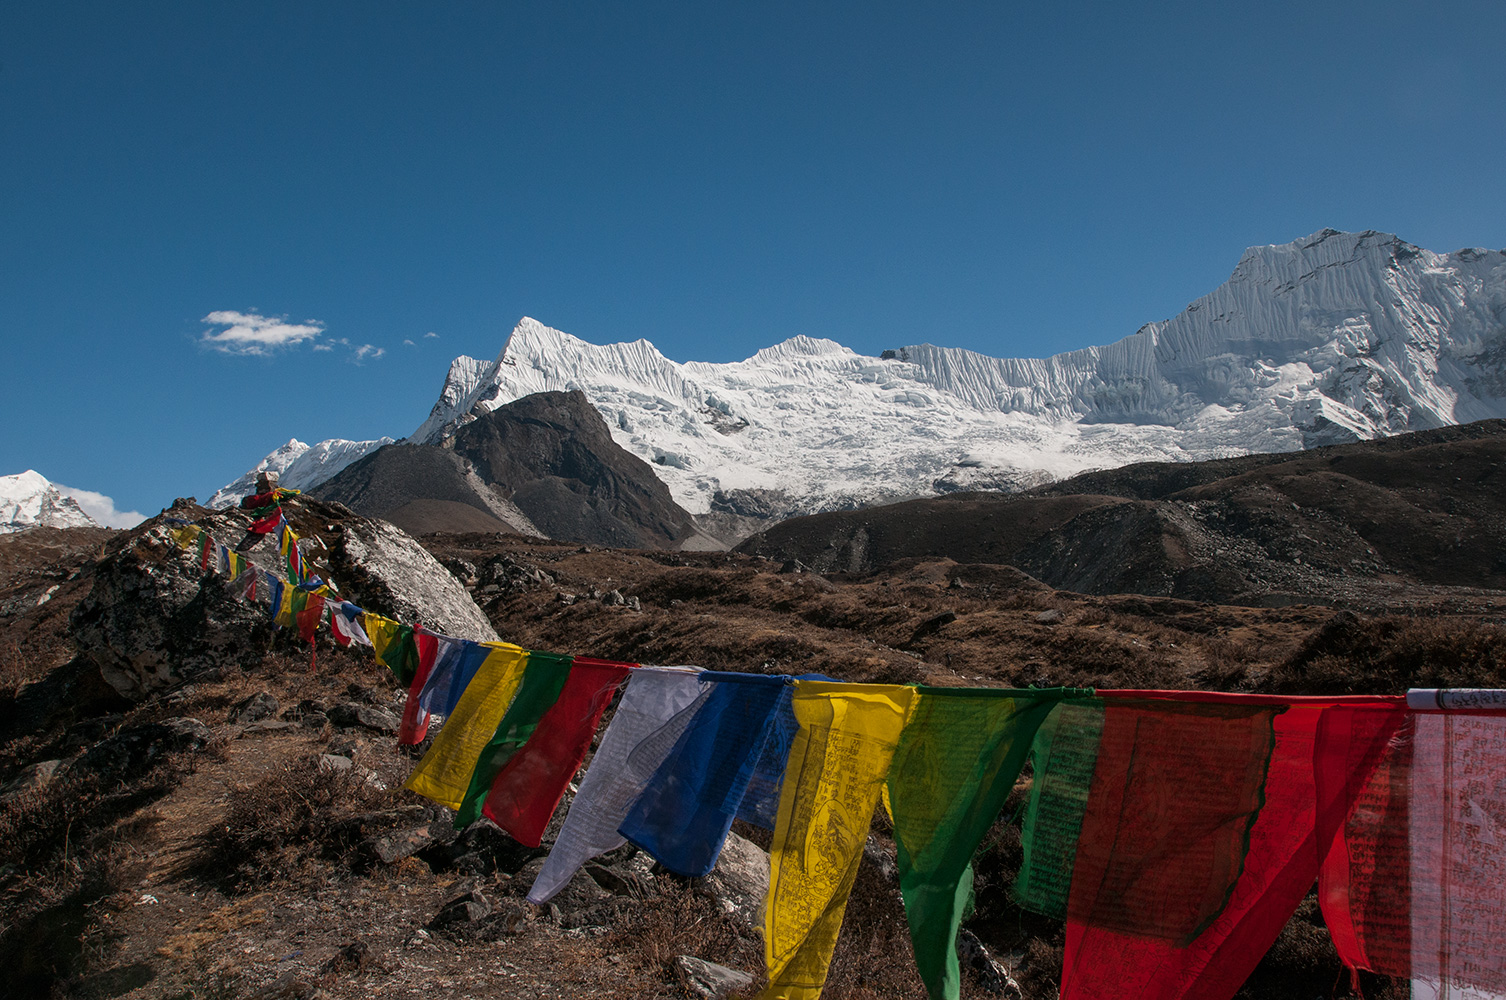 Taken from the trail to Island Peak base camp, the long snowy ridge here is between Amphulapche (left of centre) and Ombigalchen (right). In the distance to the left is Baruntse.Nikon D300, 17-35mm. November 2008